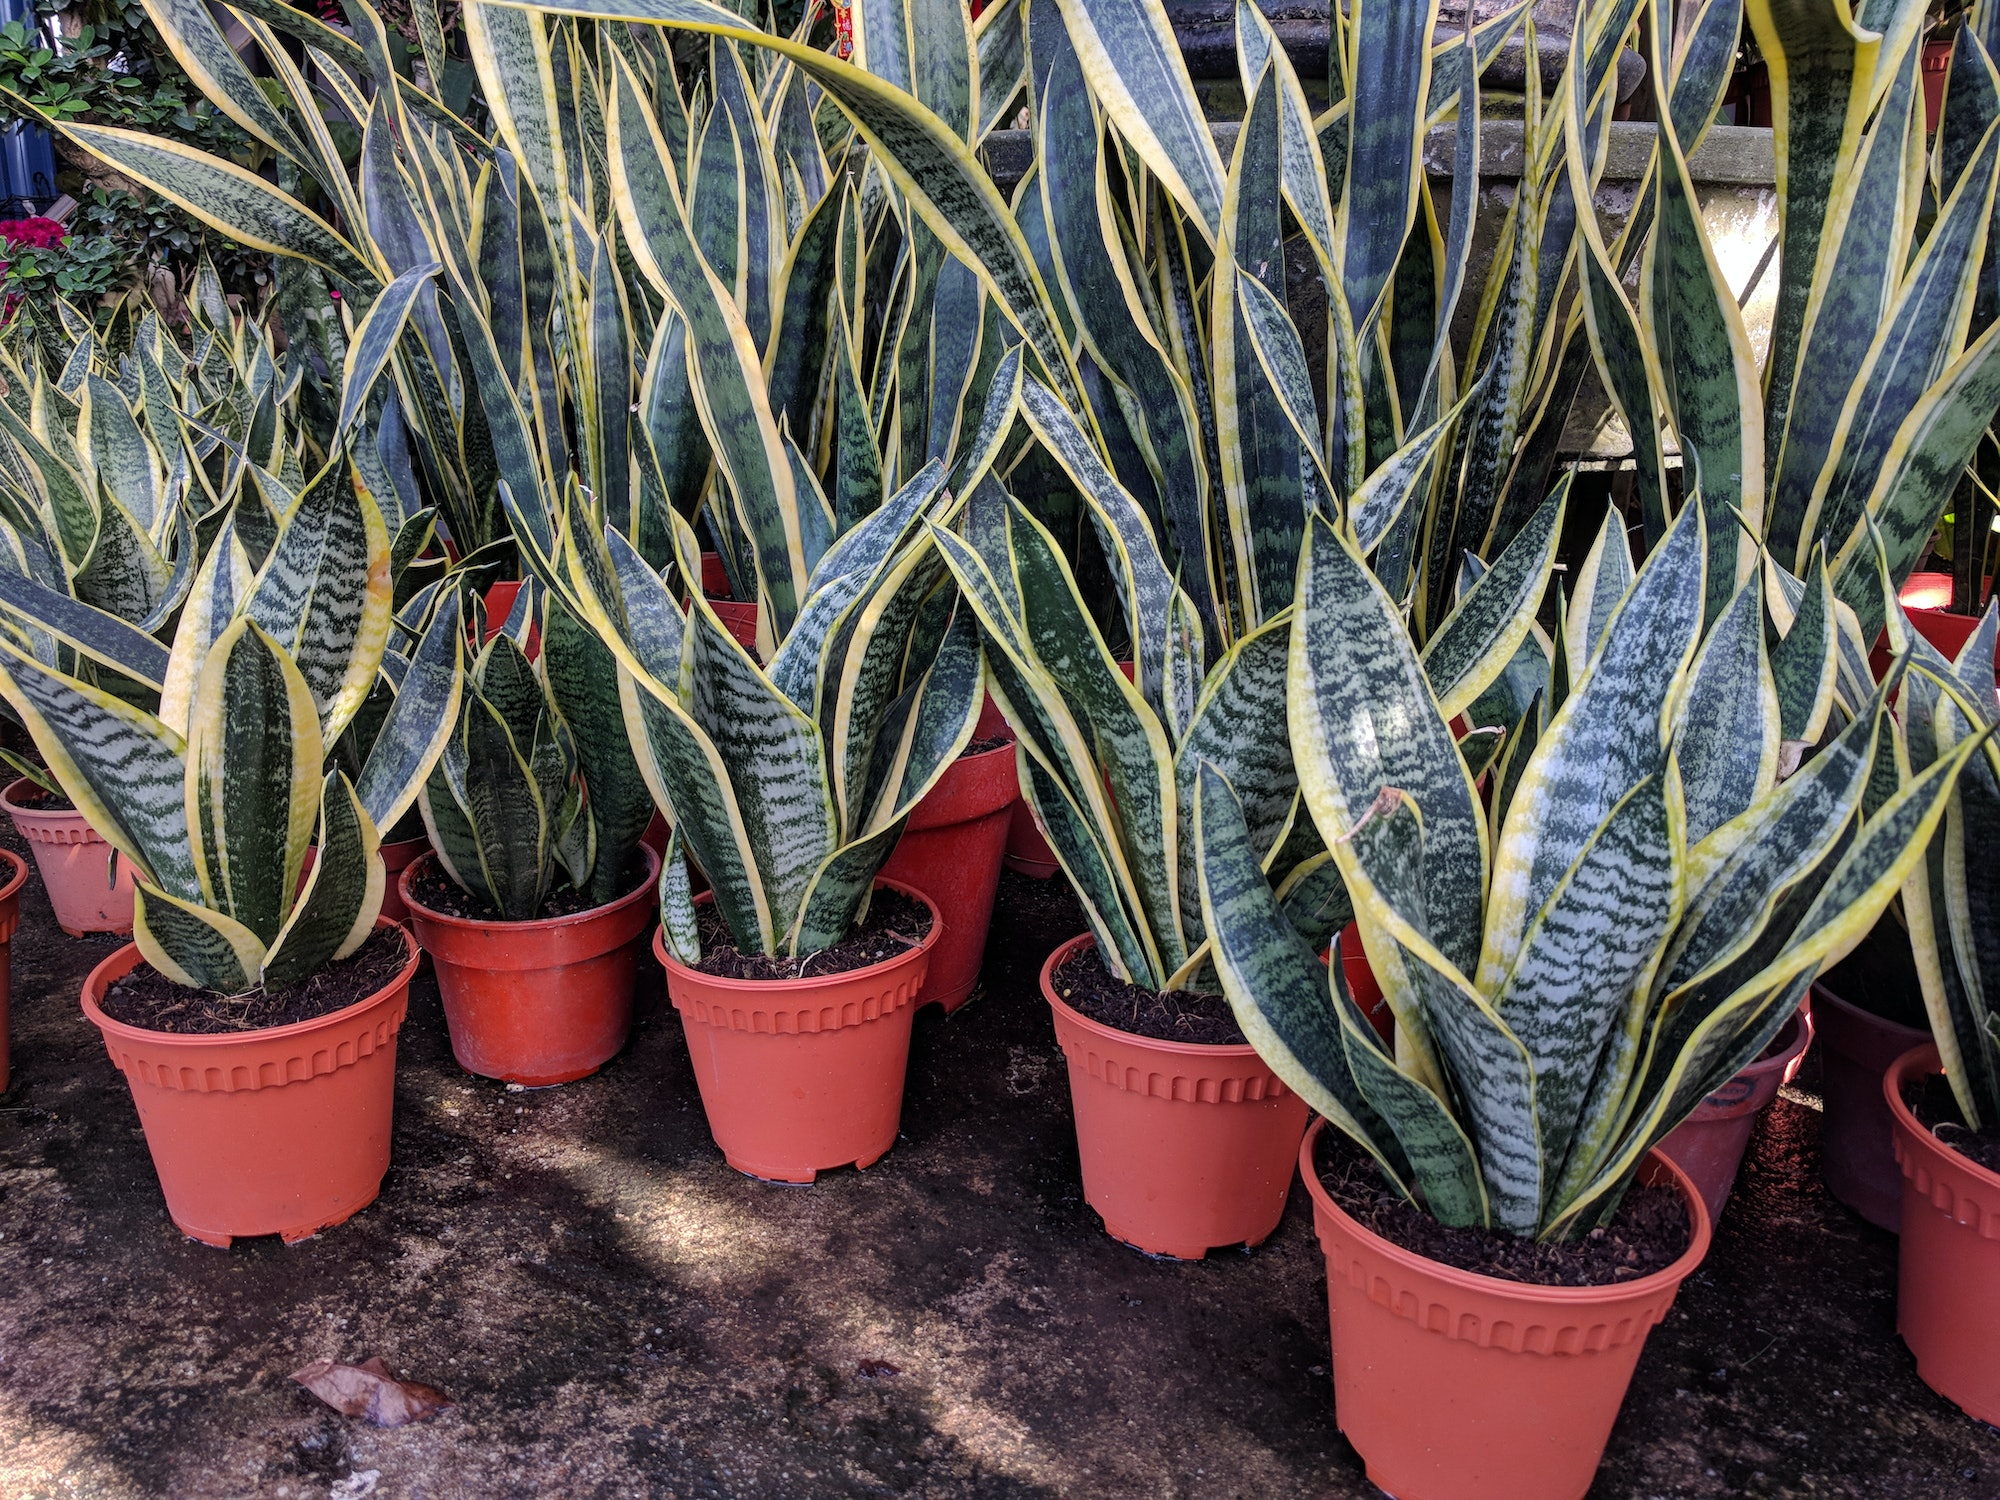 Pots of snake plant (Sansevieria trifasciata) for sale in a nursery